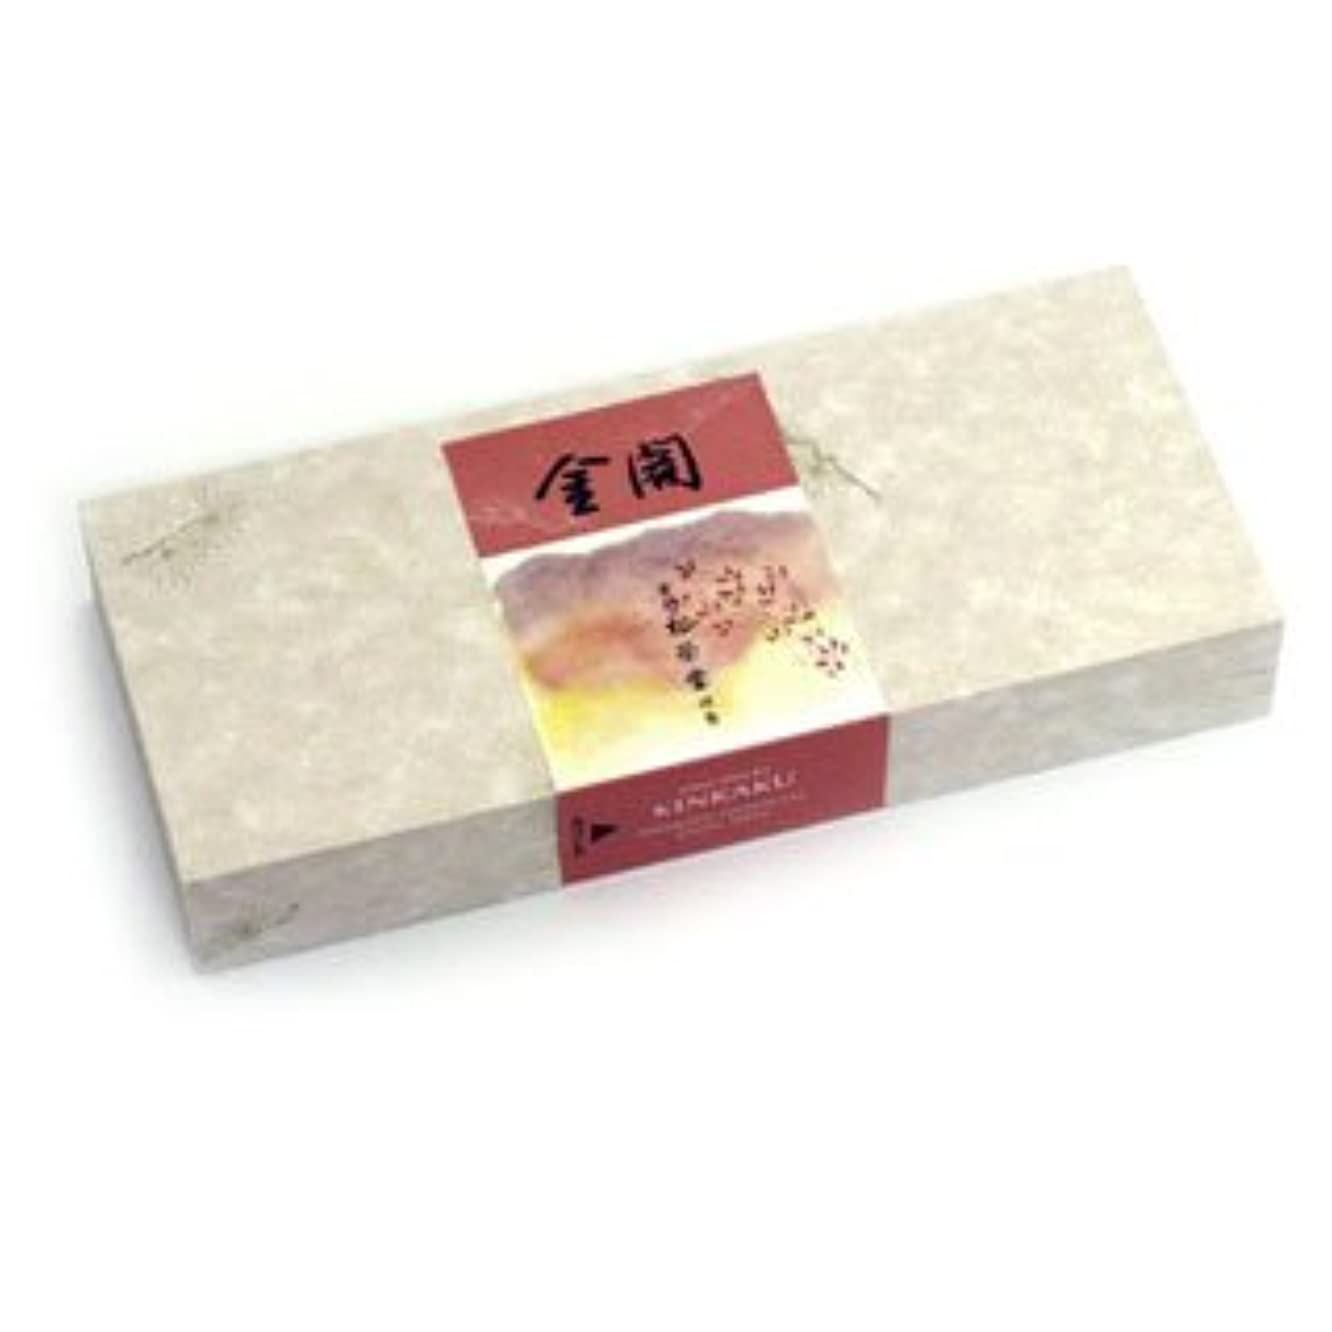 上向きリダクター背の高いShoyeido 's Golden Pavilion Incense、150 sticks – kin-kaku